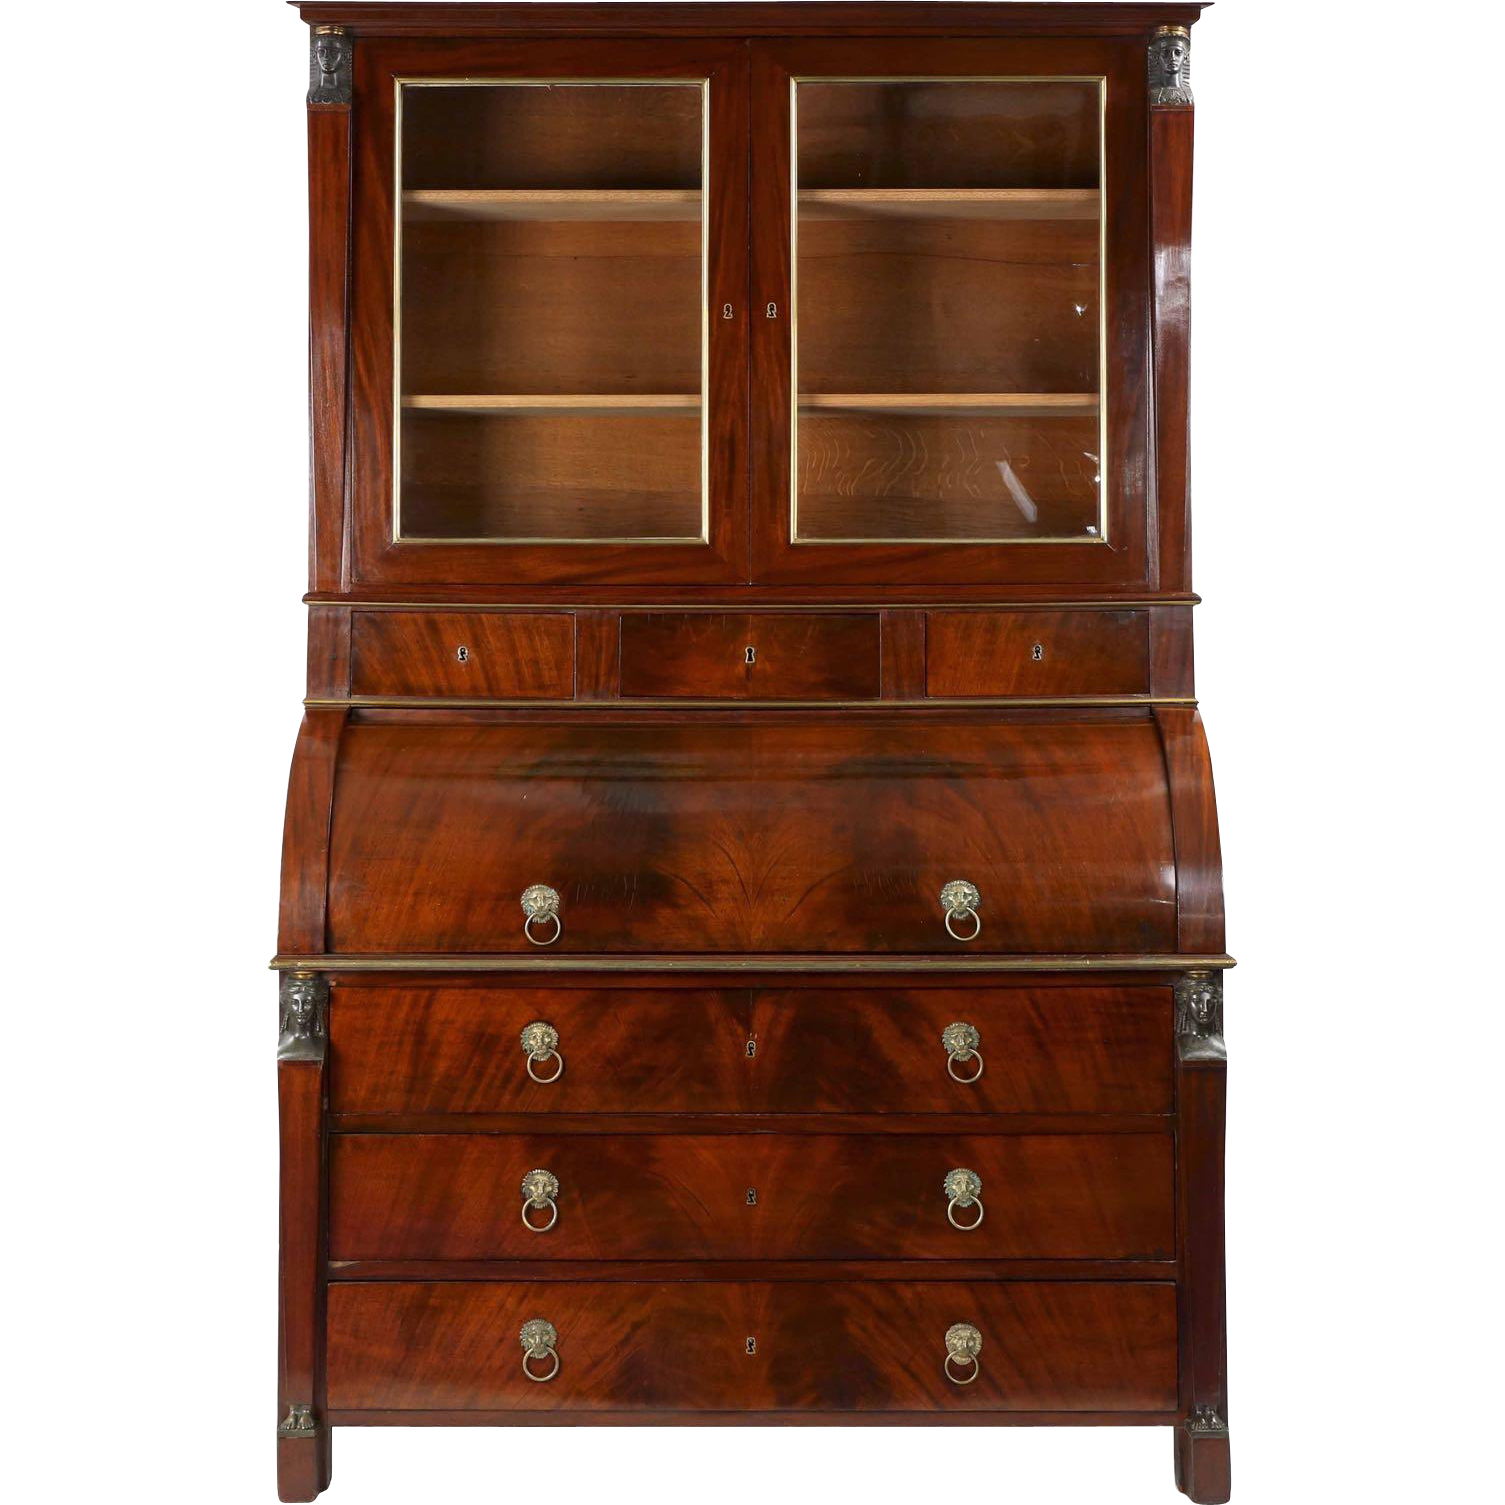 Egyptian French Empire Antique Secretary Desk by Jean-Joseph Chapuis :  Silla, Ltd. | Ruby Lane - Egyptian French Empire Antique Secretary Desk By Jean-Joseph Chapuis